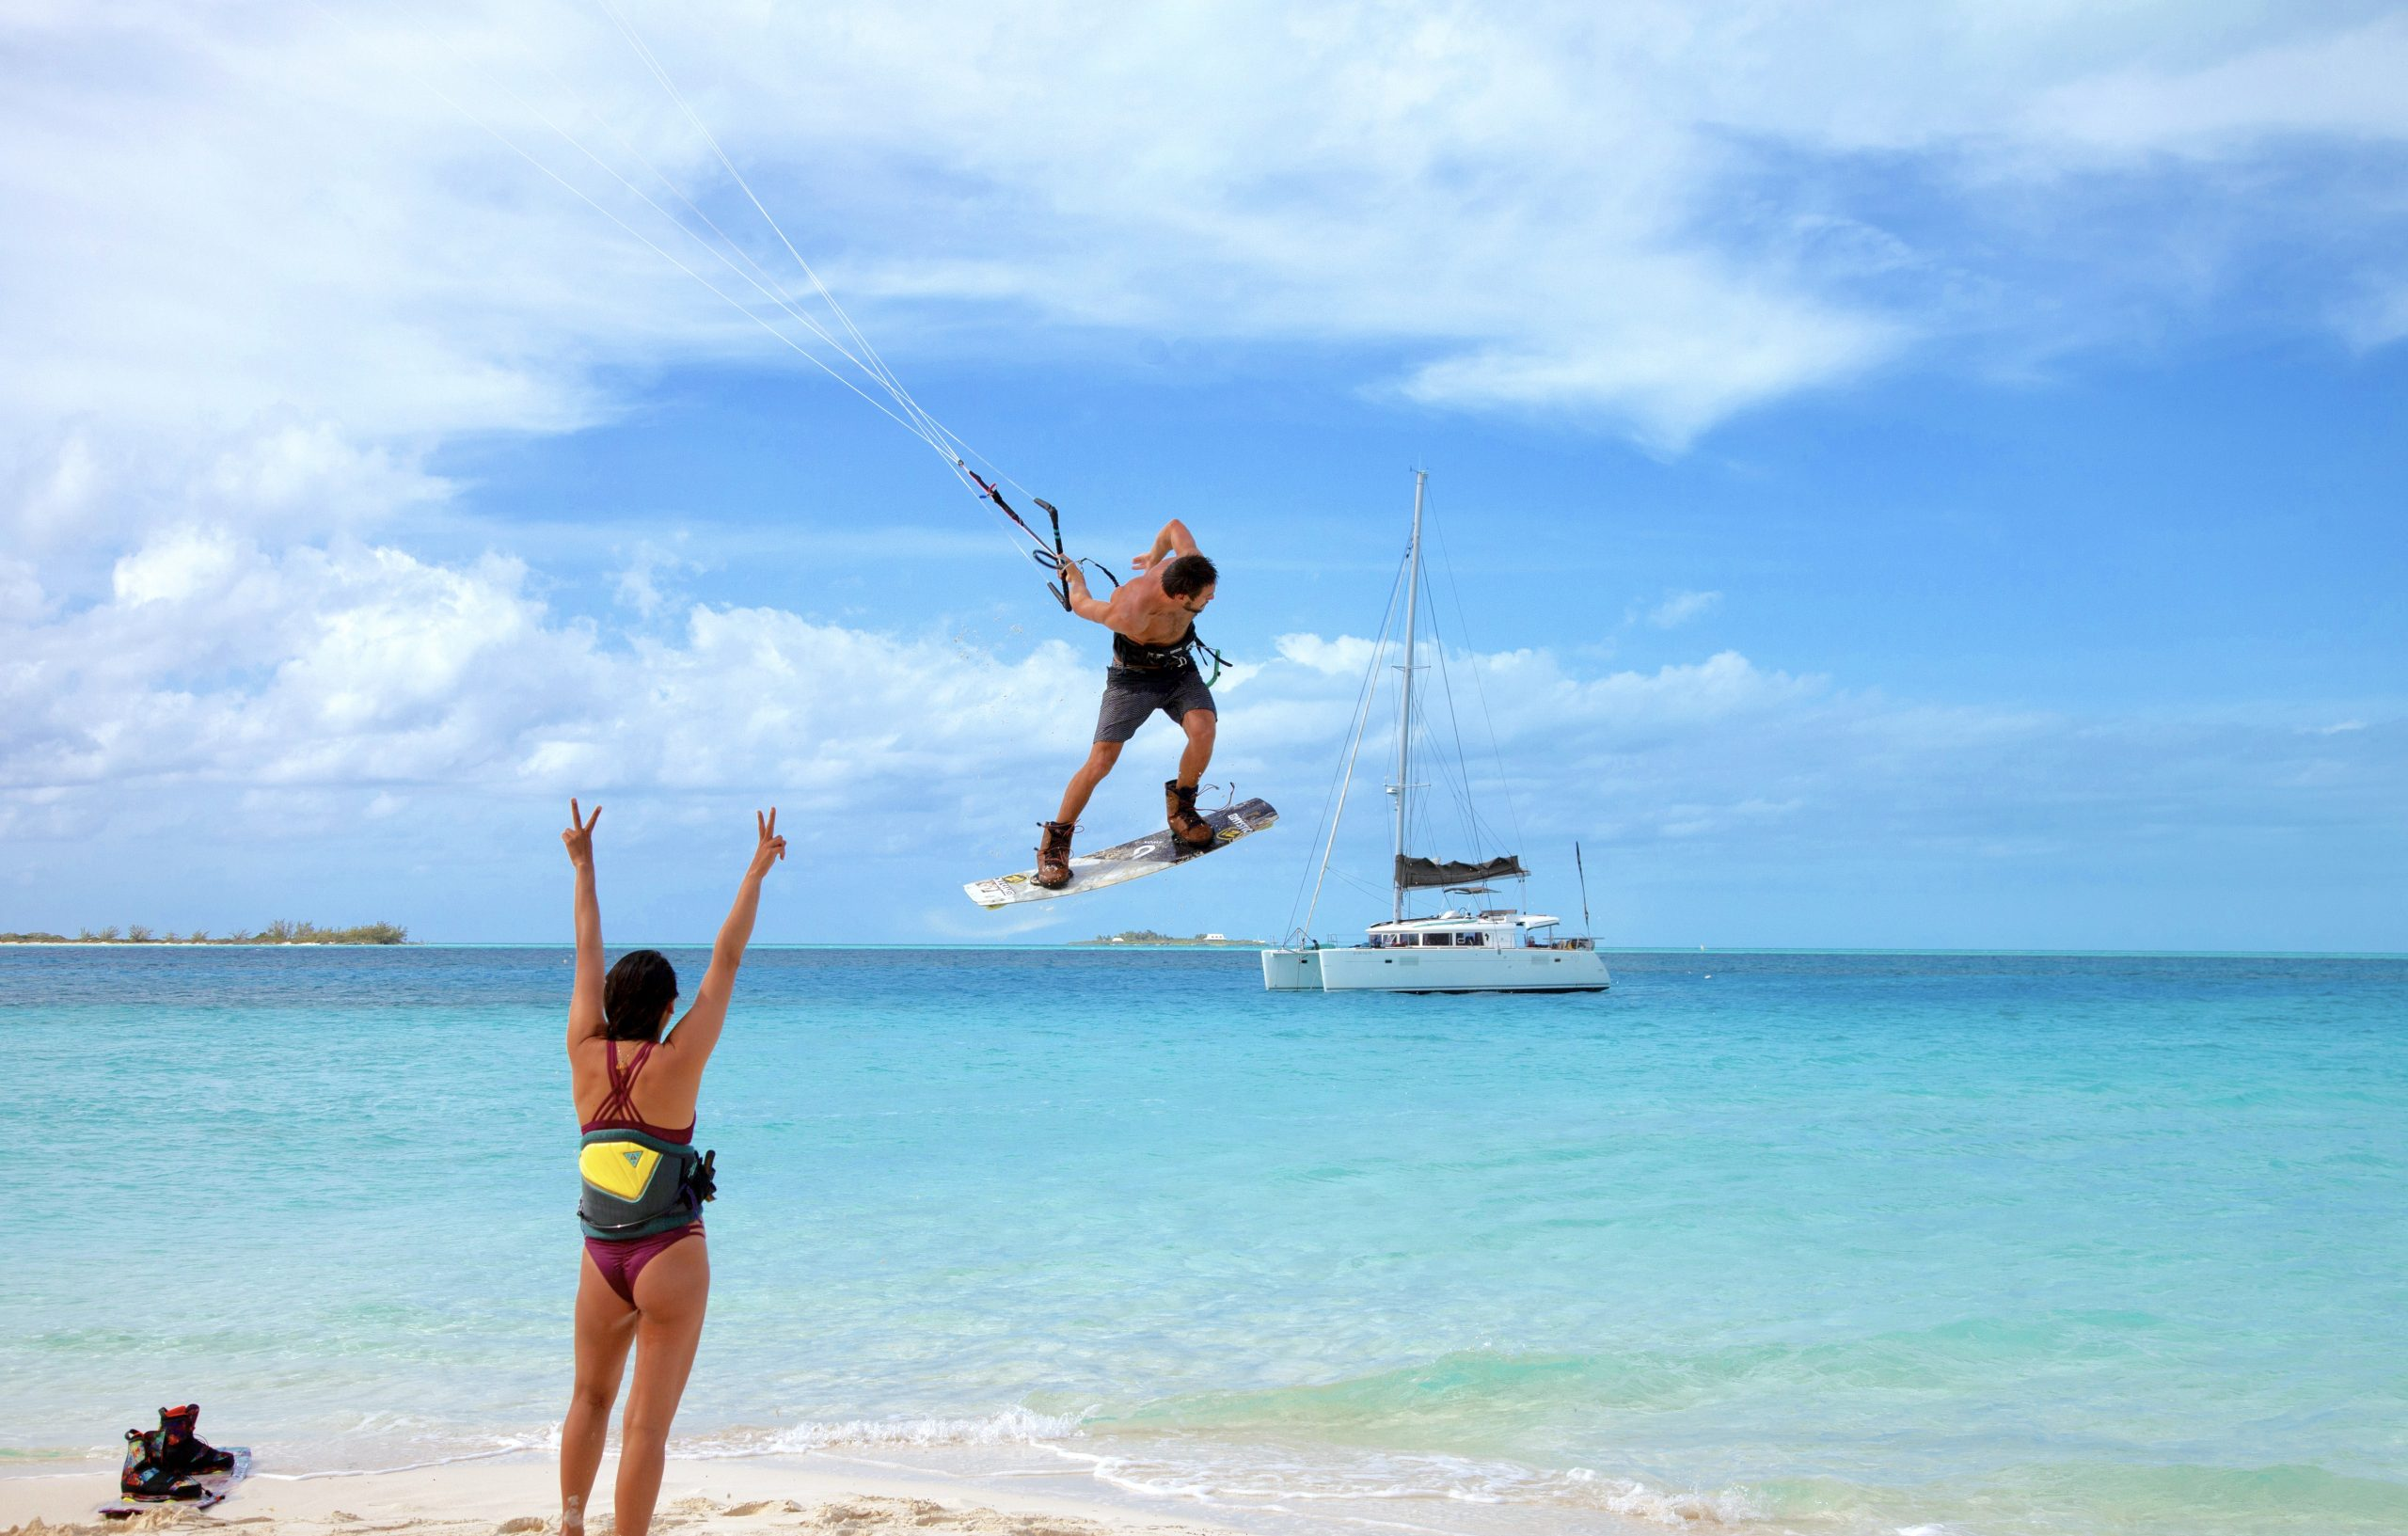 Kitesurfing or Clinic